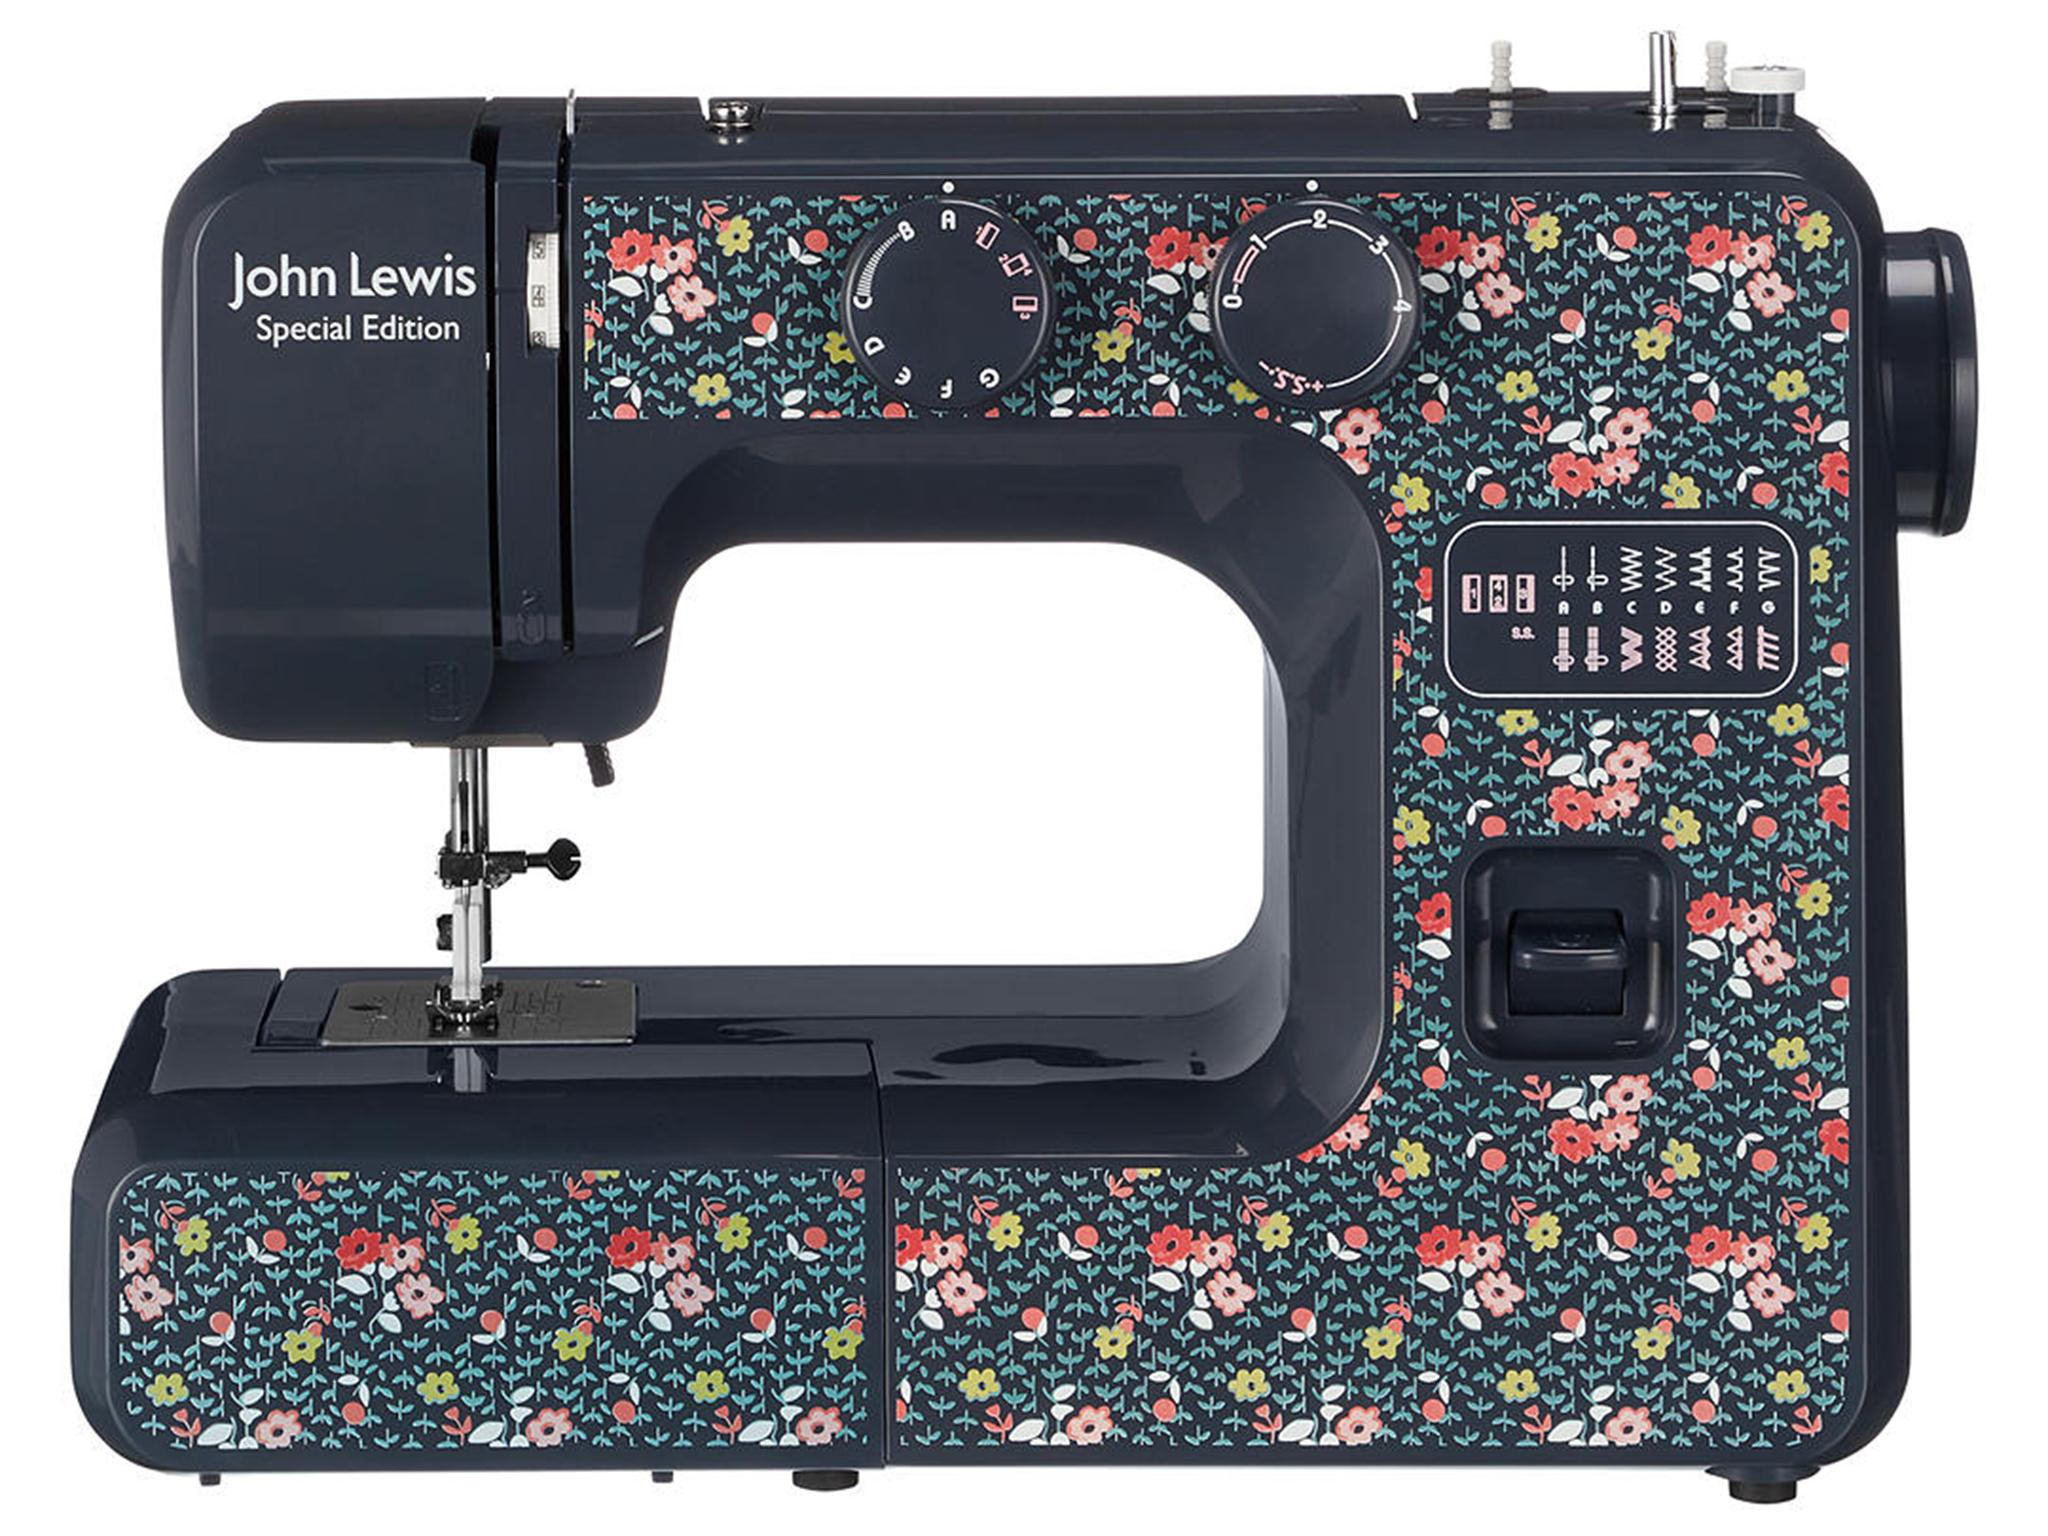 Best sewing machines for beginners | The Independent